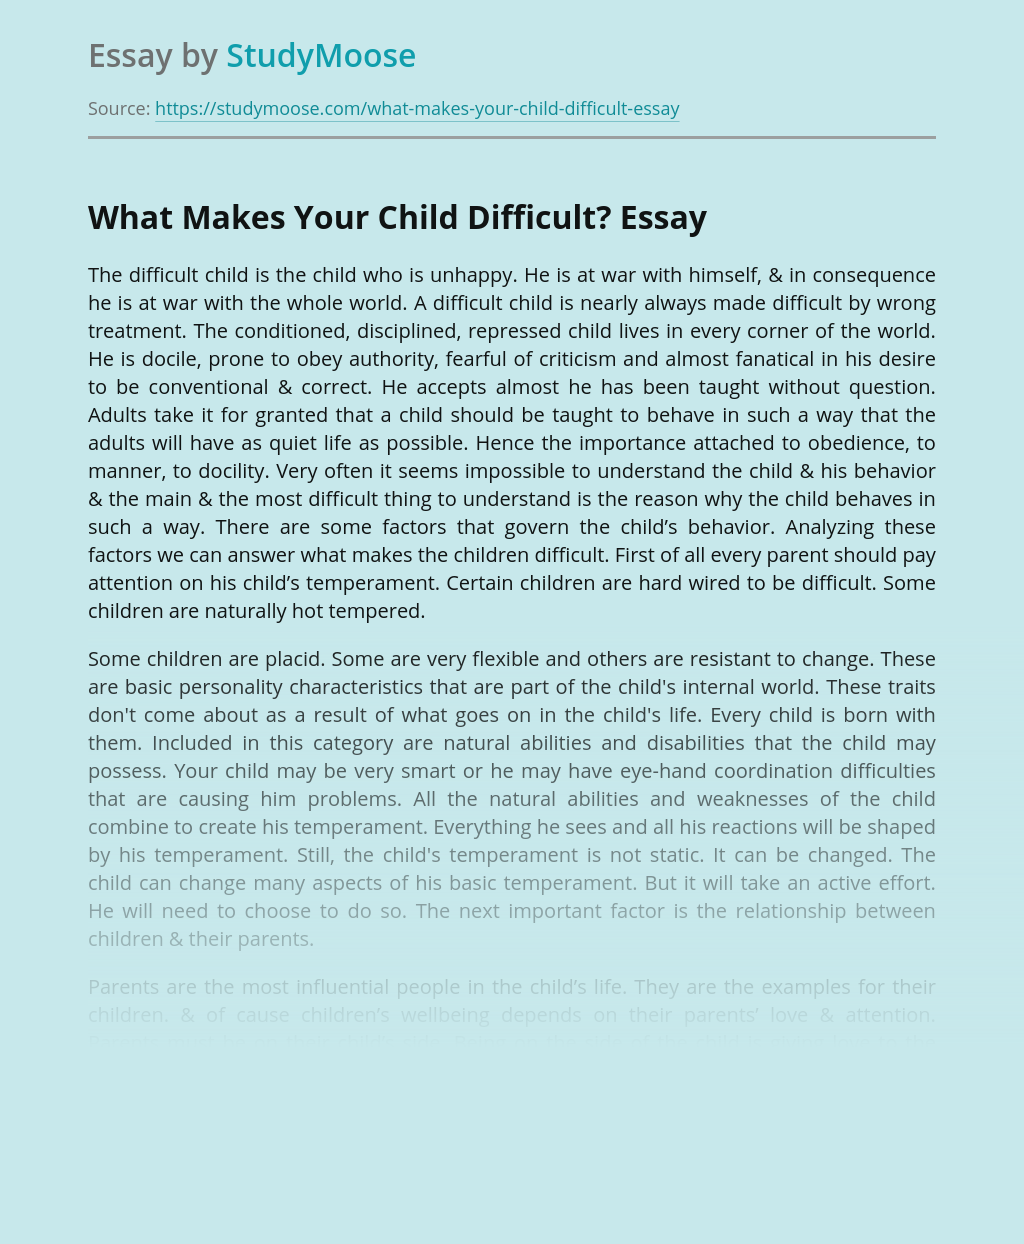 What Makes Your Child Difficult?